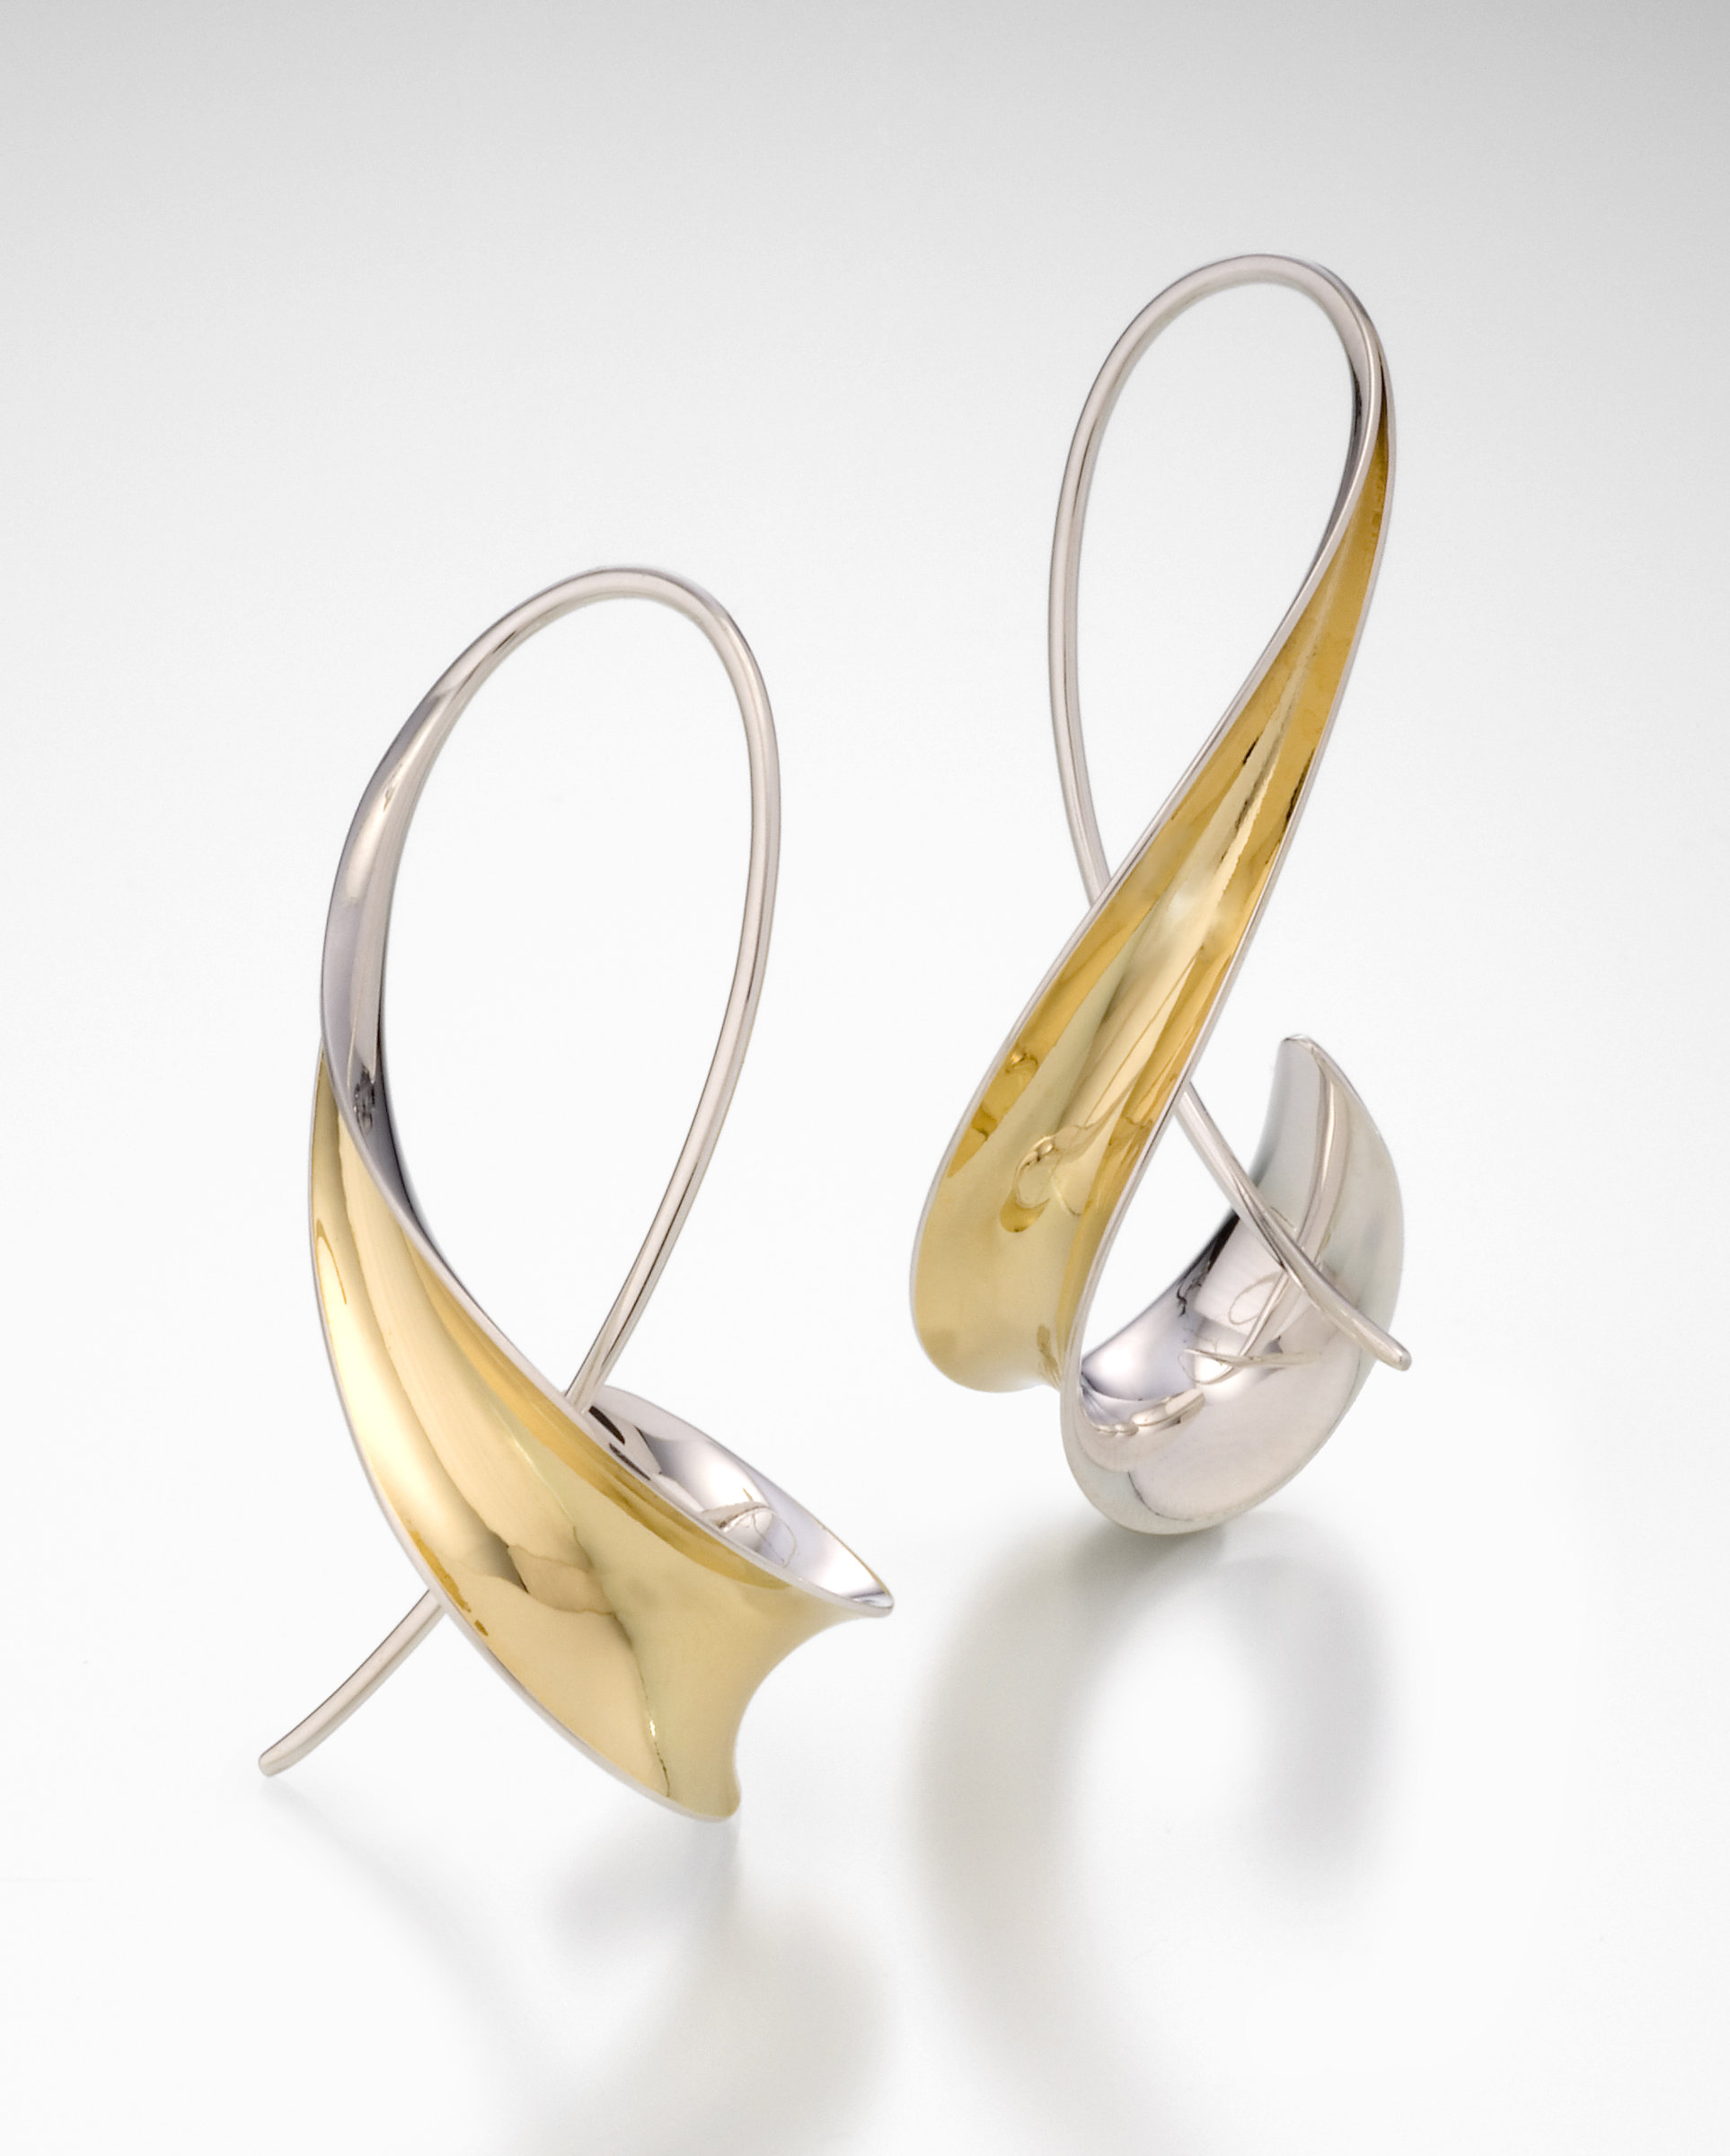 7c4feabaa Long Hook Earrings by Nancy Linkin (Silver & Gold Earrings) | Artful Home